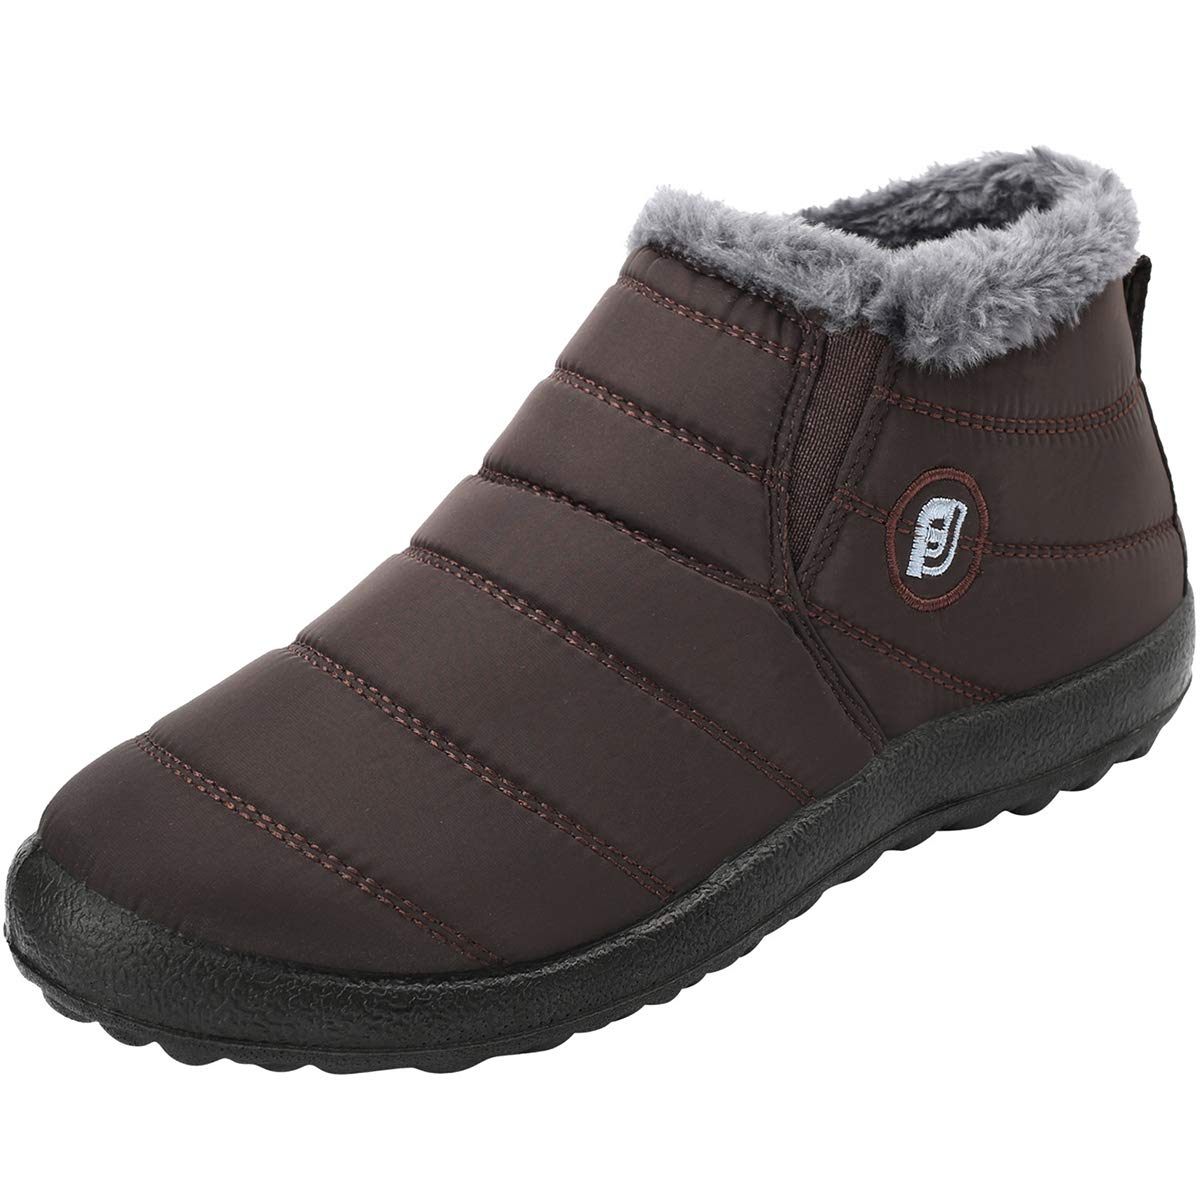 JOINFREE Winter Snow Boots for Women Waterproof Anti-Skid House Shoes Ankle Outdoor for Couples